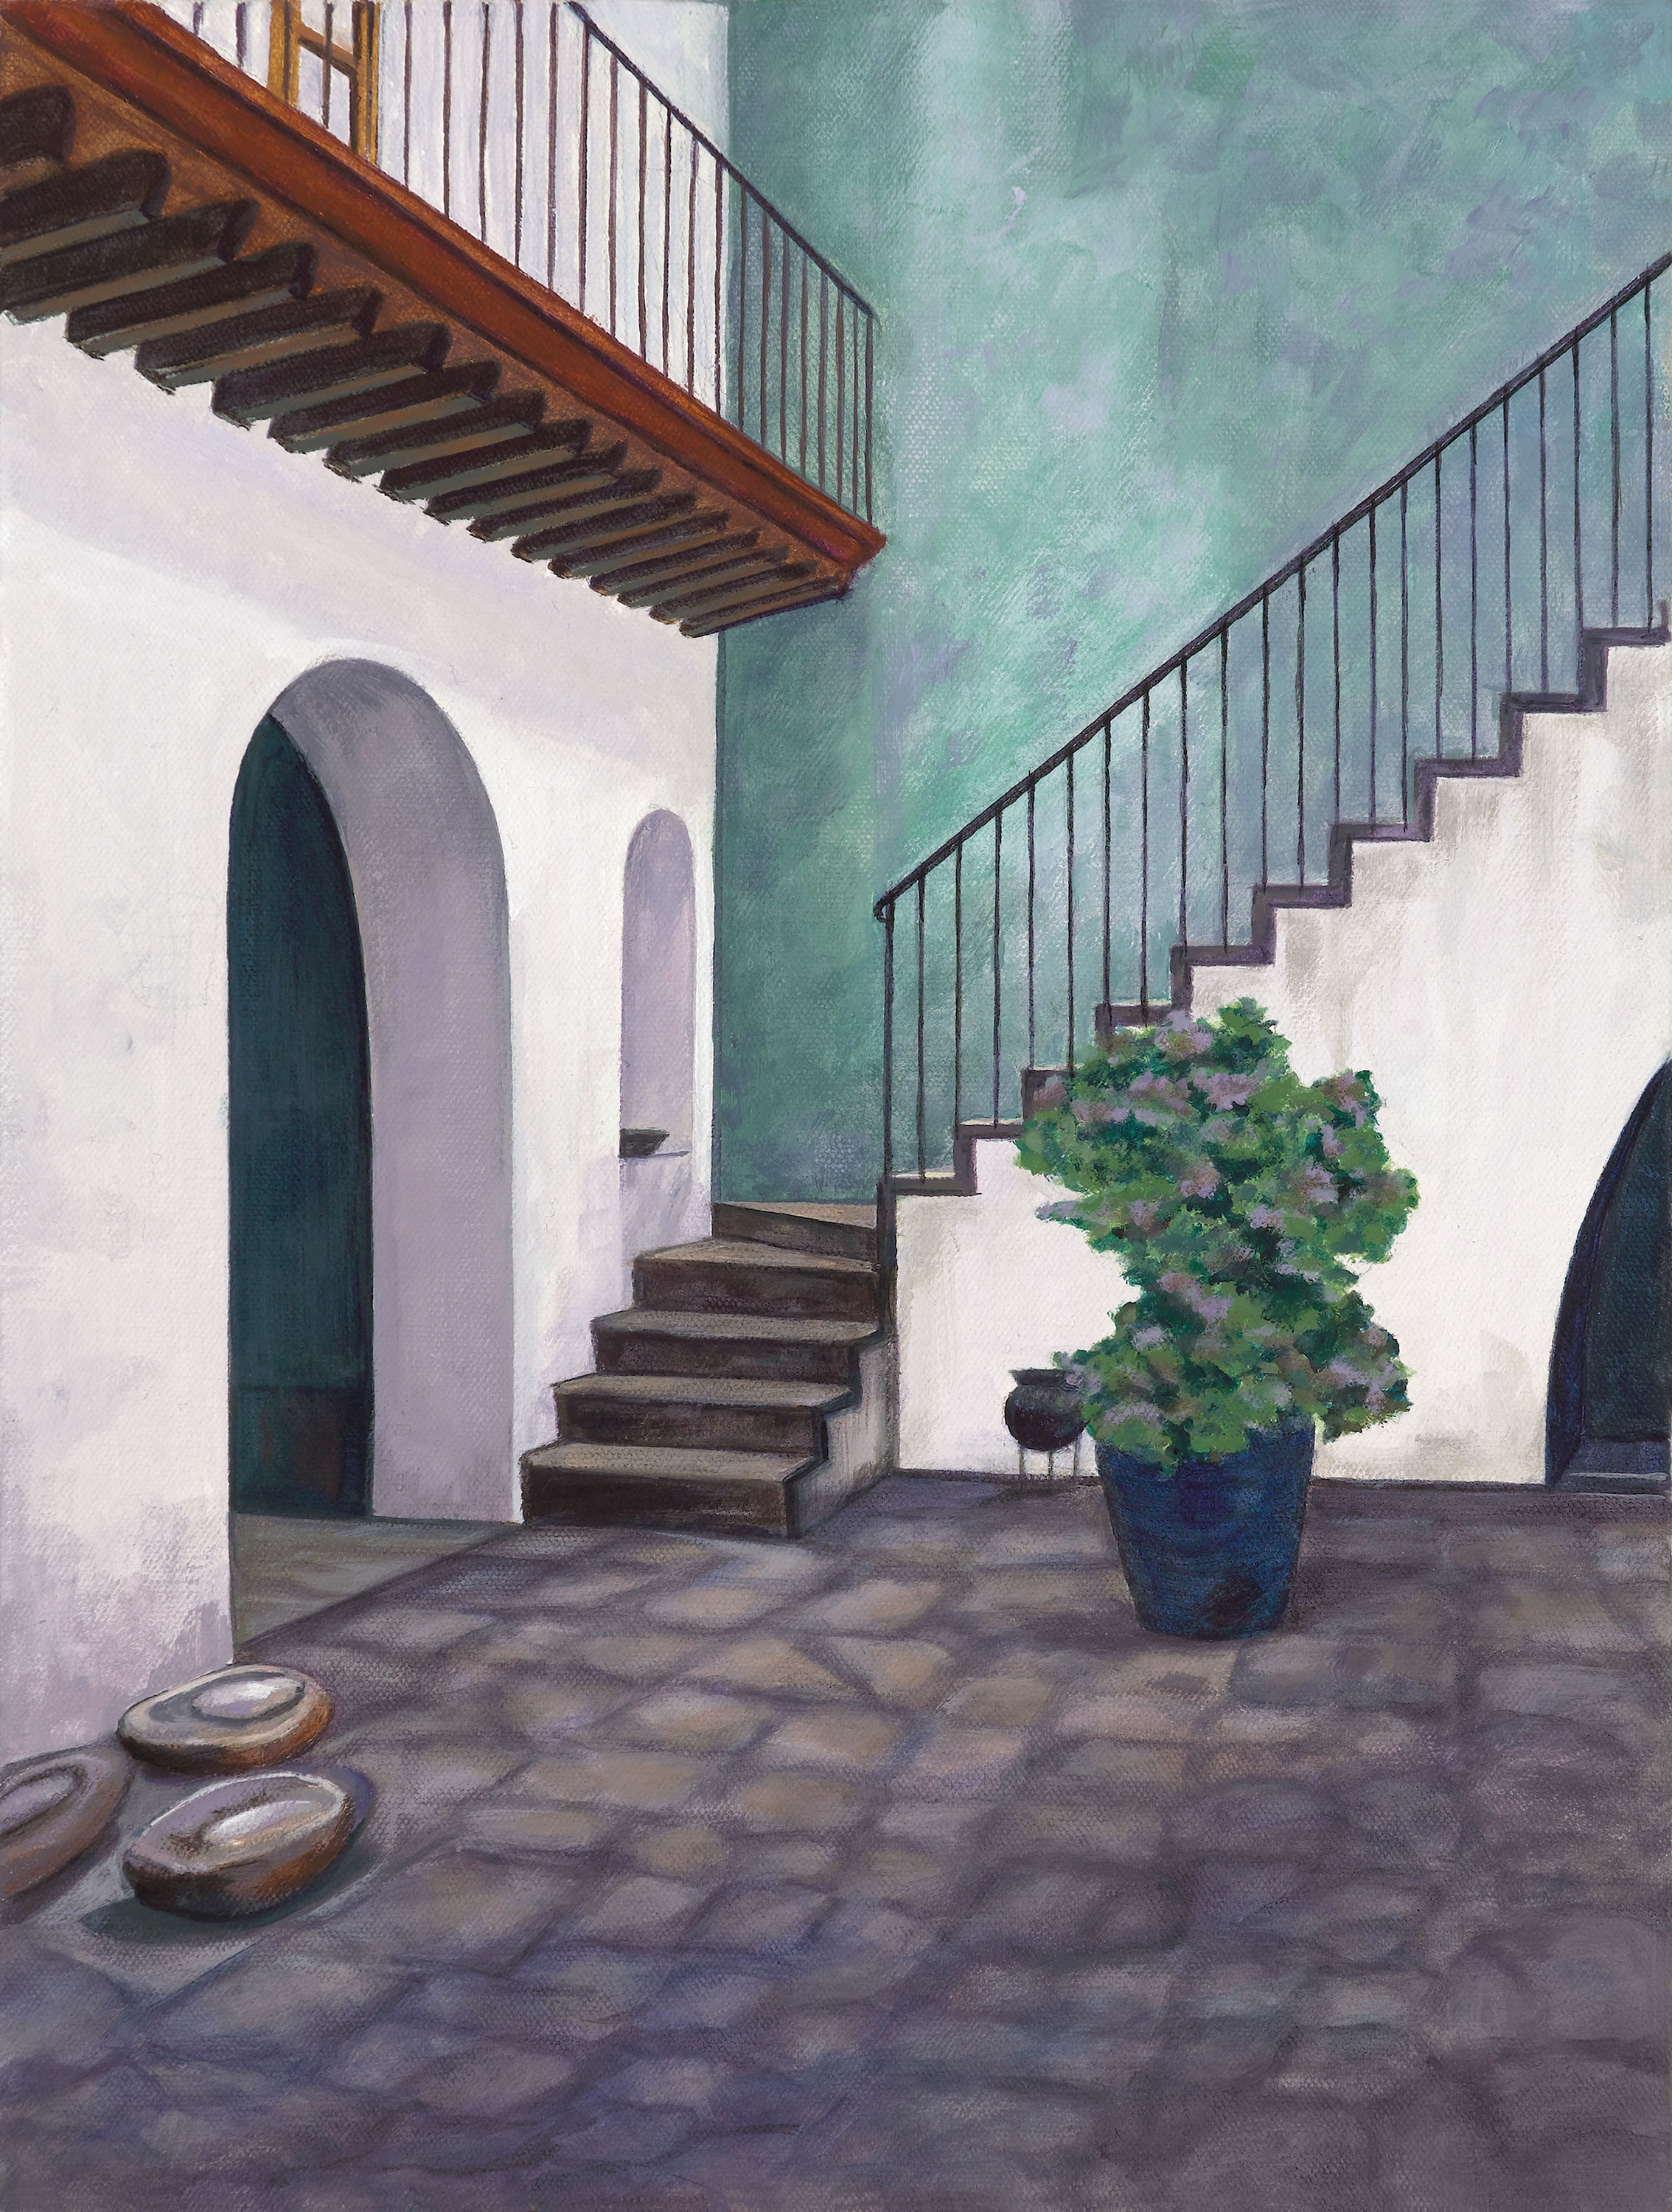 Oaxaca-Interior-with-Staircase.jpg